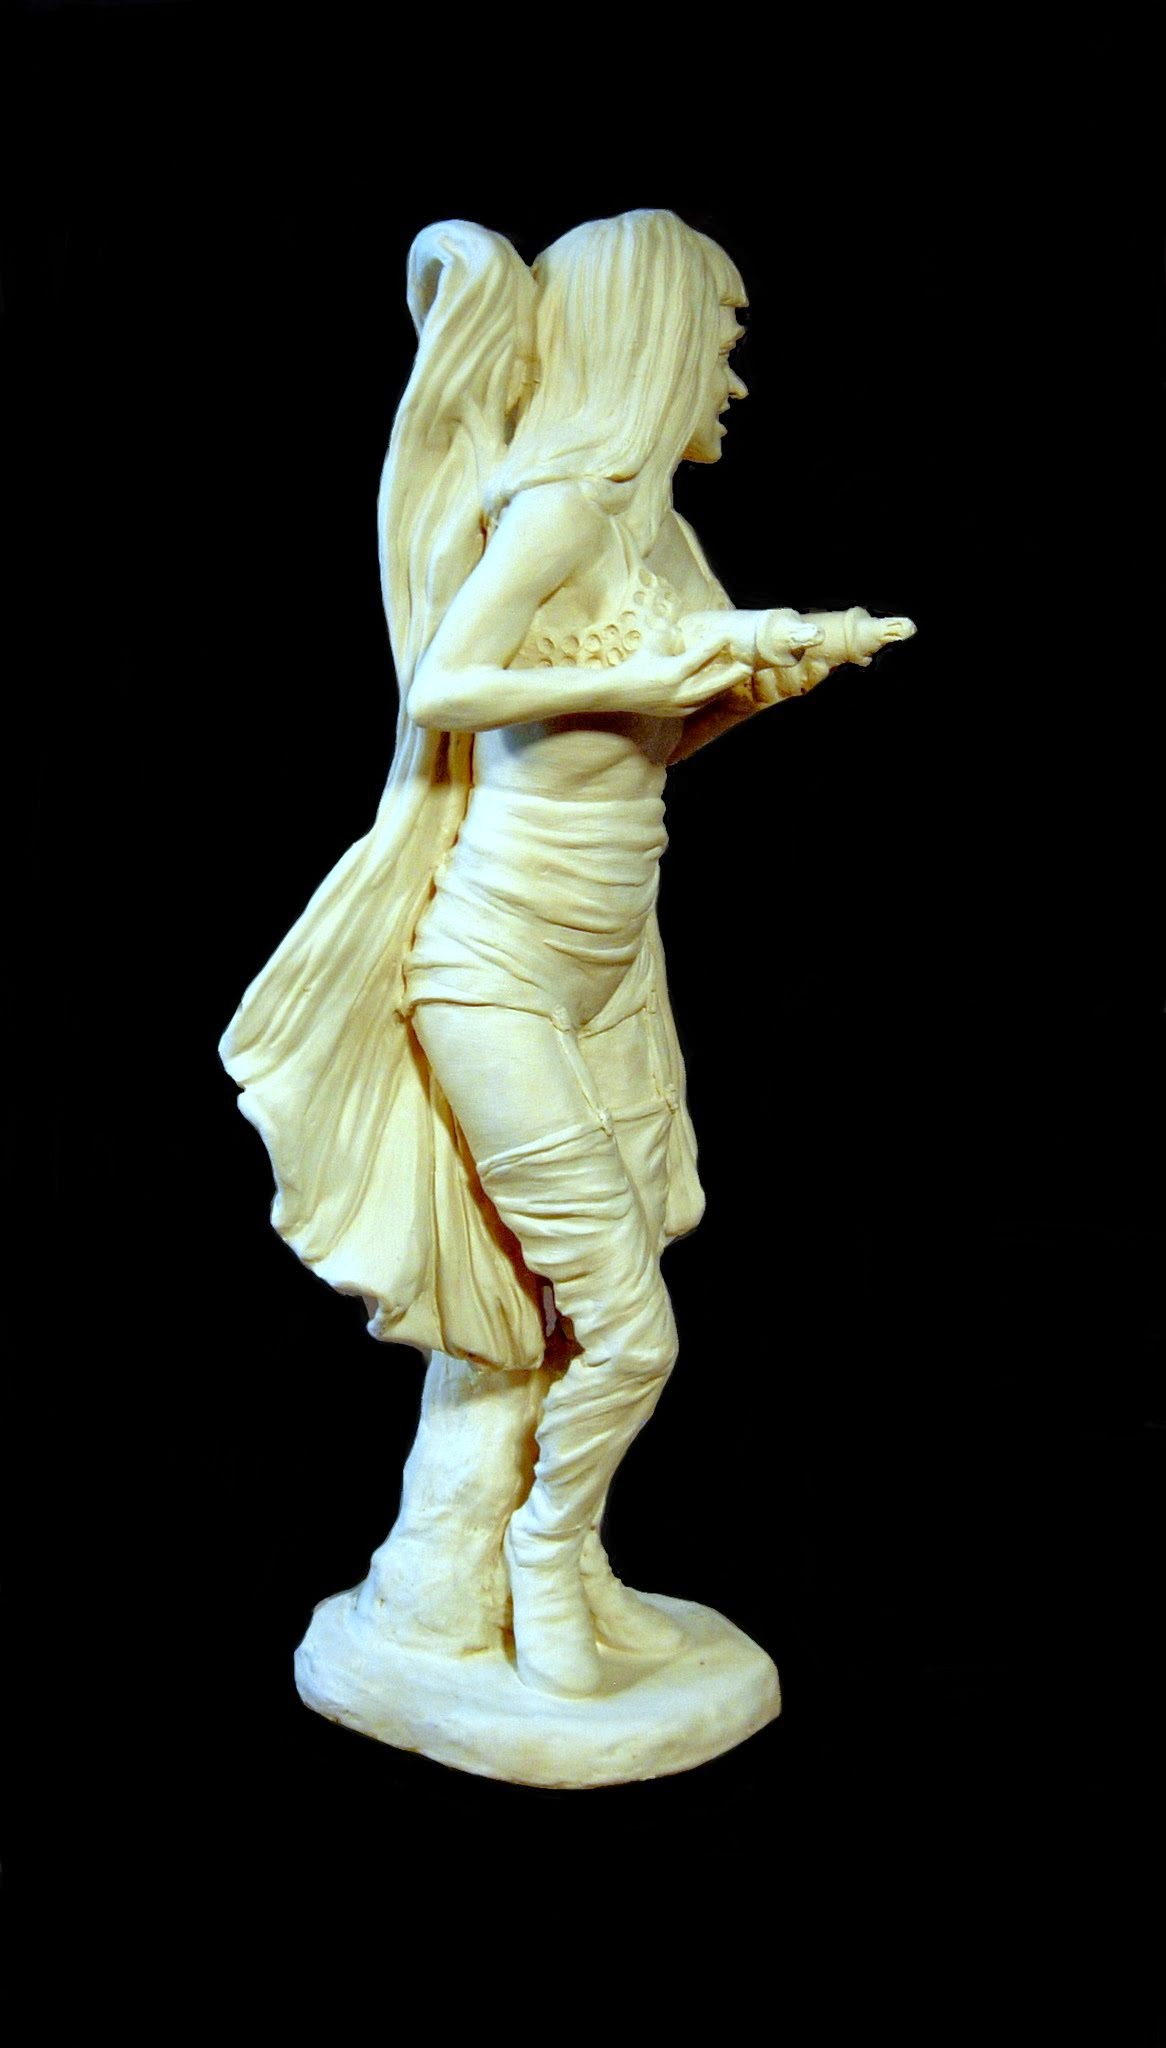 Sarah Hahn Sculpture - Katy Perry 3